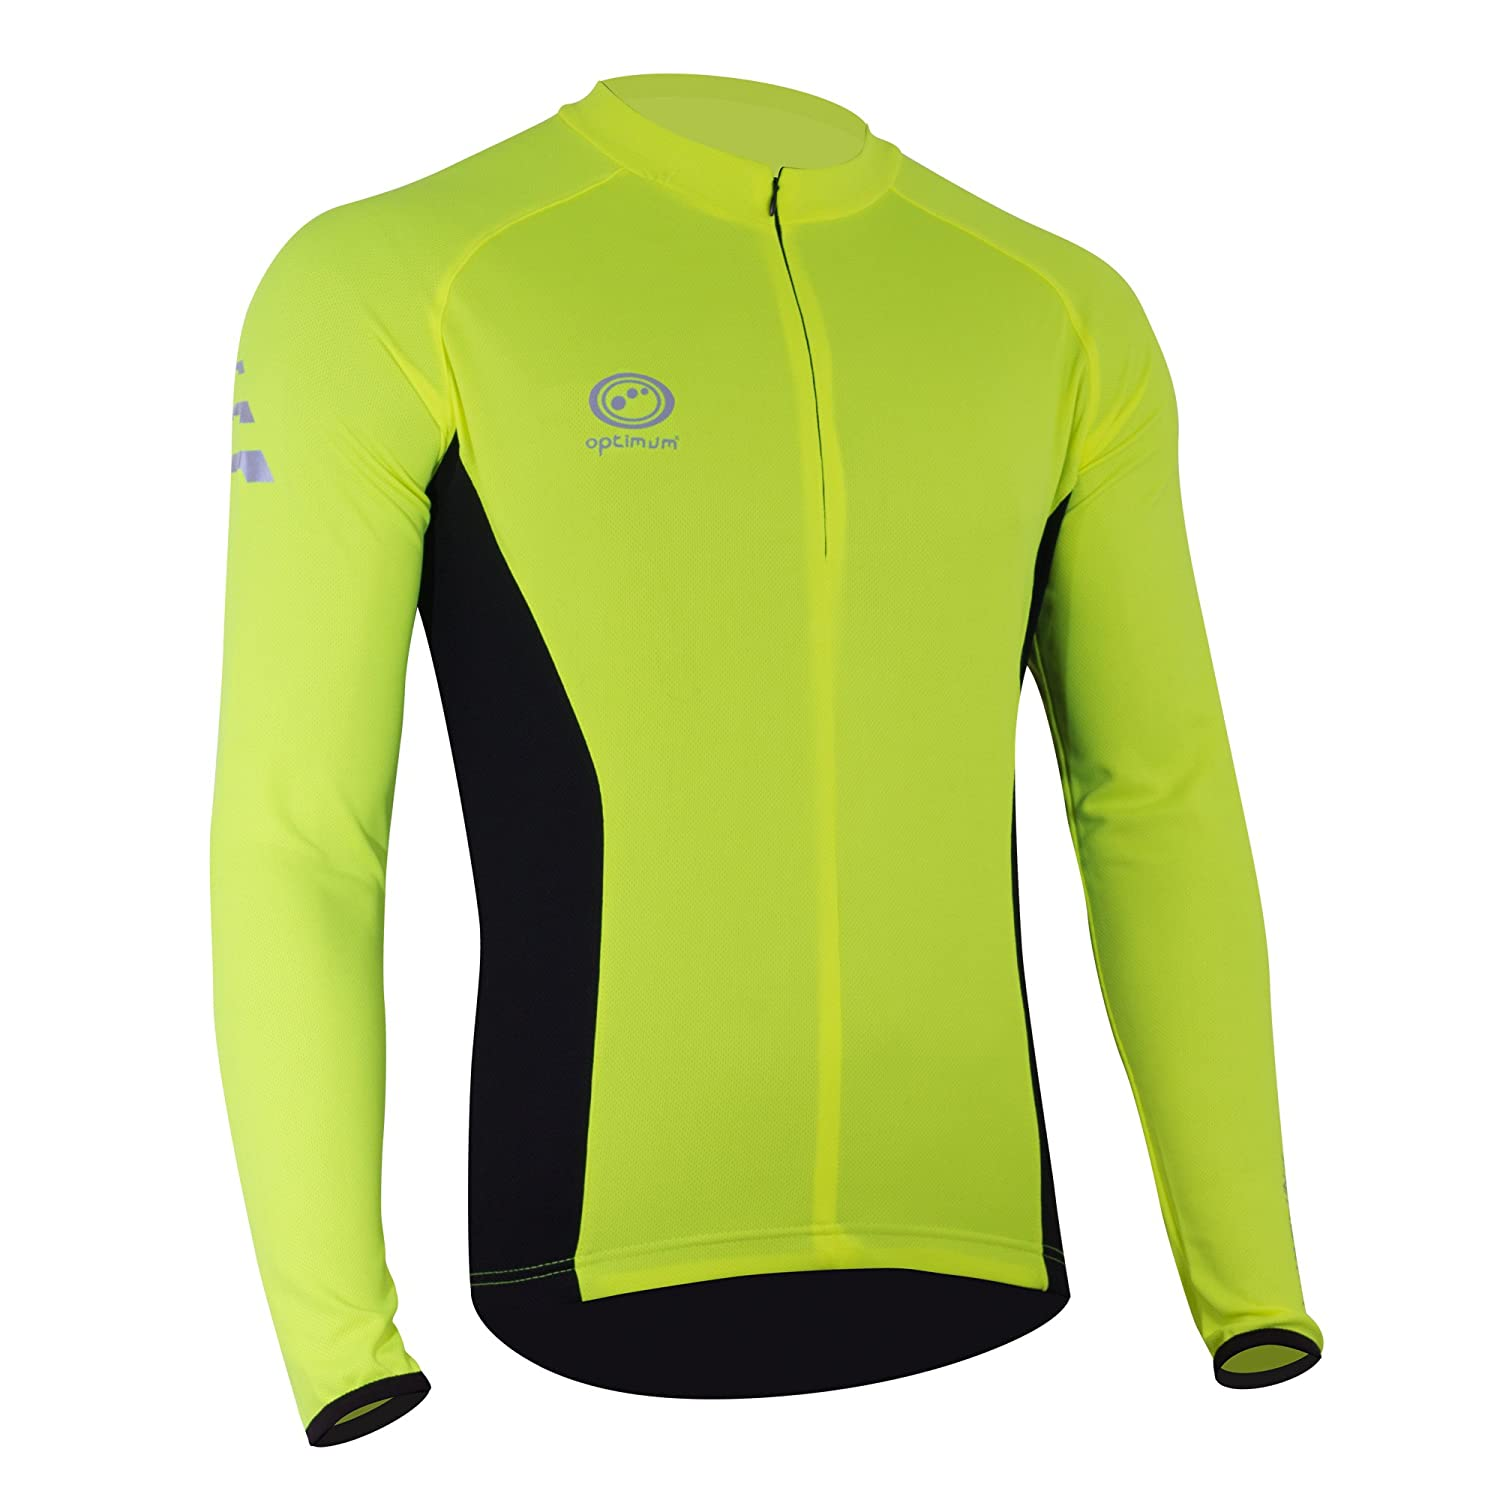 Optimum Men's Nitebrite Cycling Long Sleeve Jersey